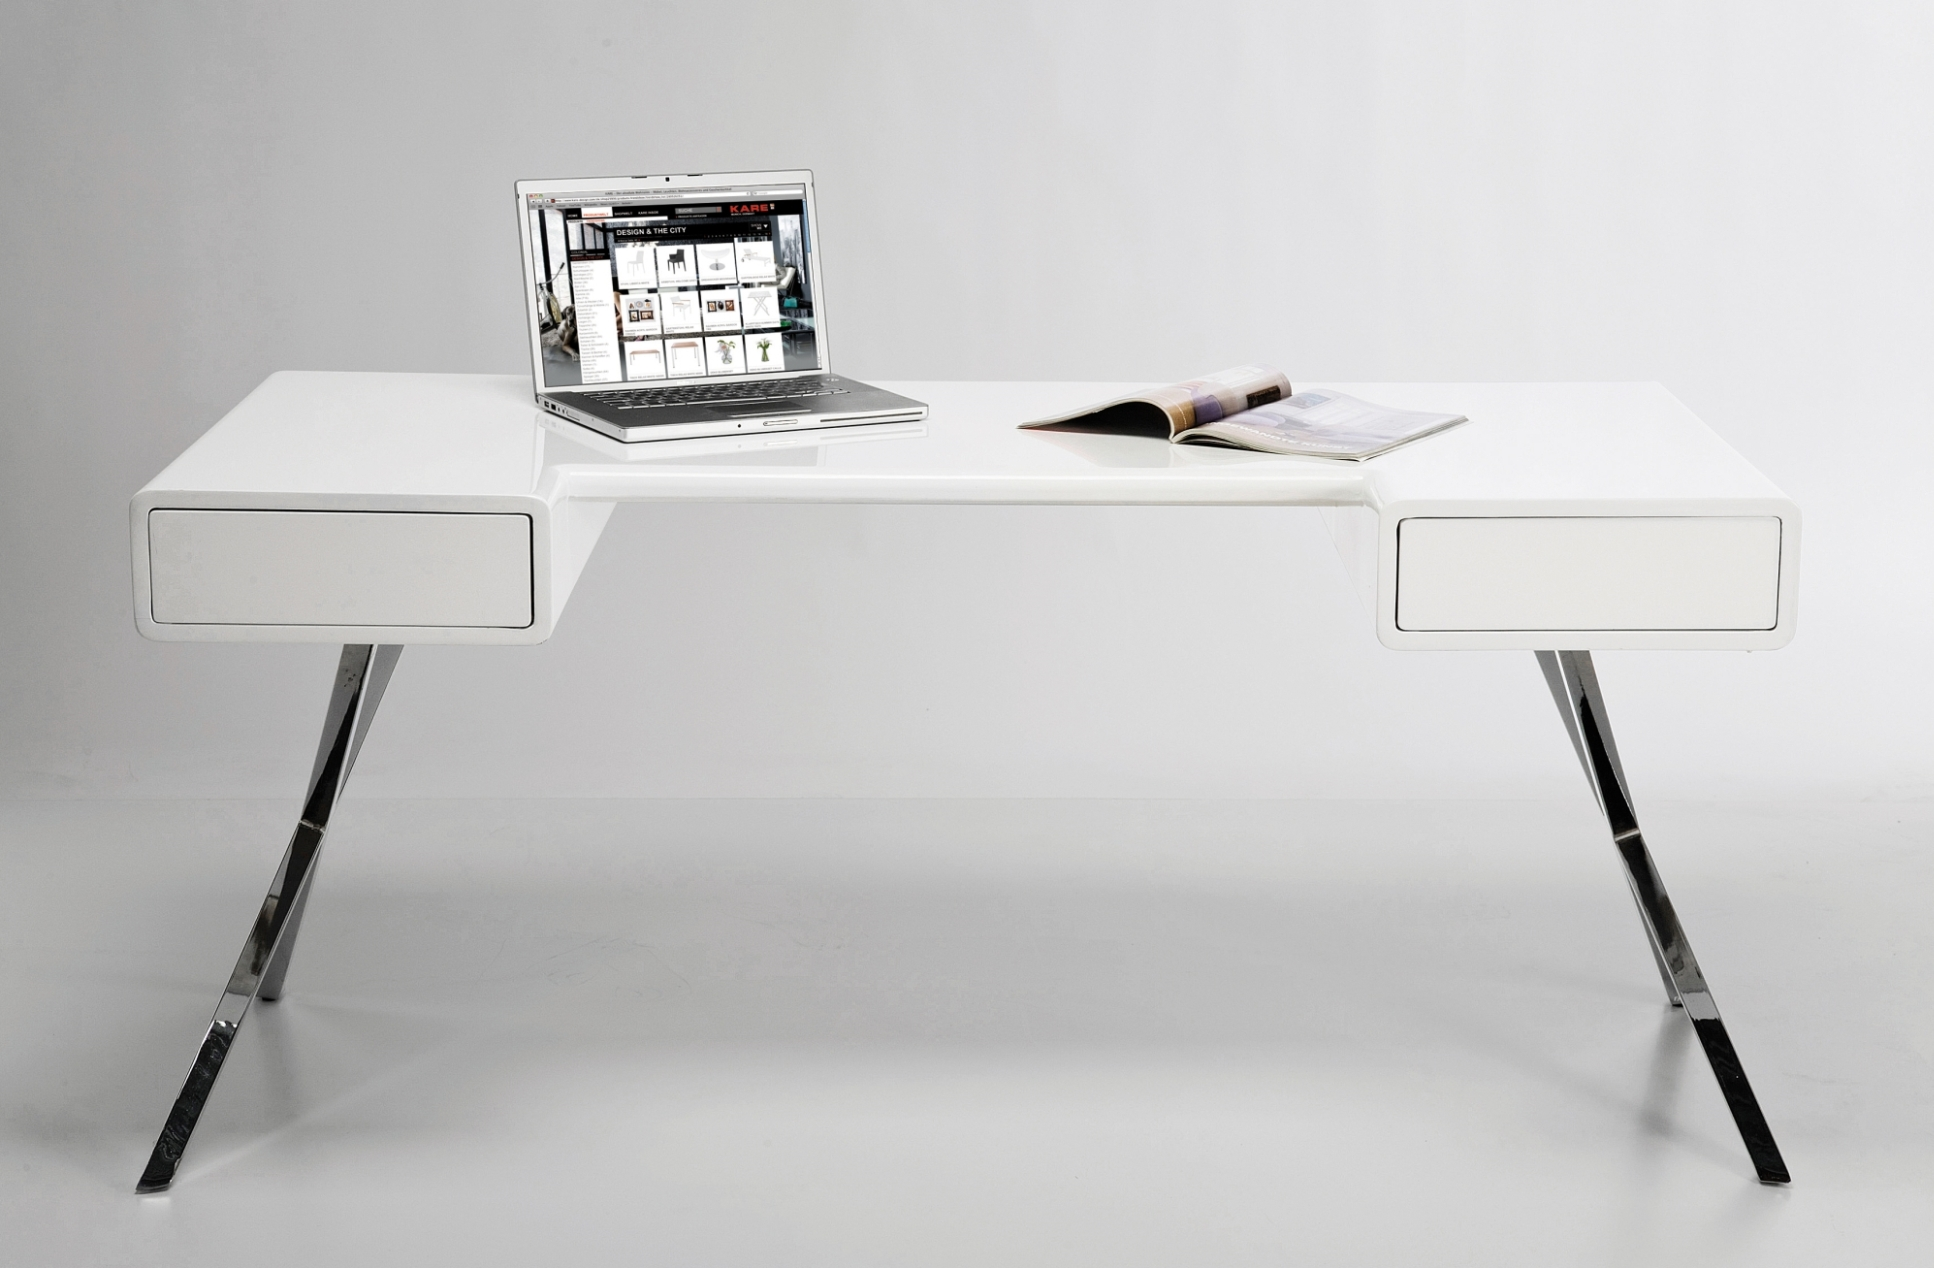 Bureau smart desk wit loftscape aanbieding kopen for Design bureau 1